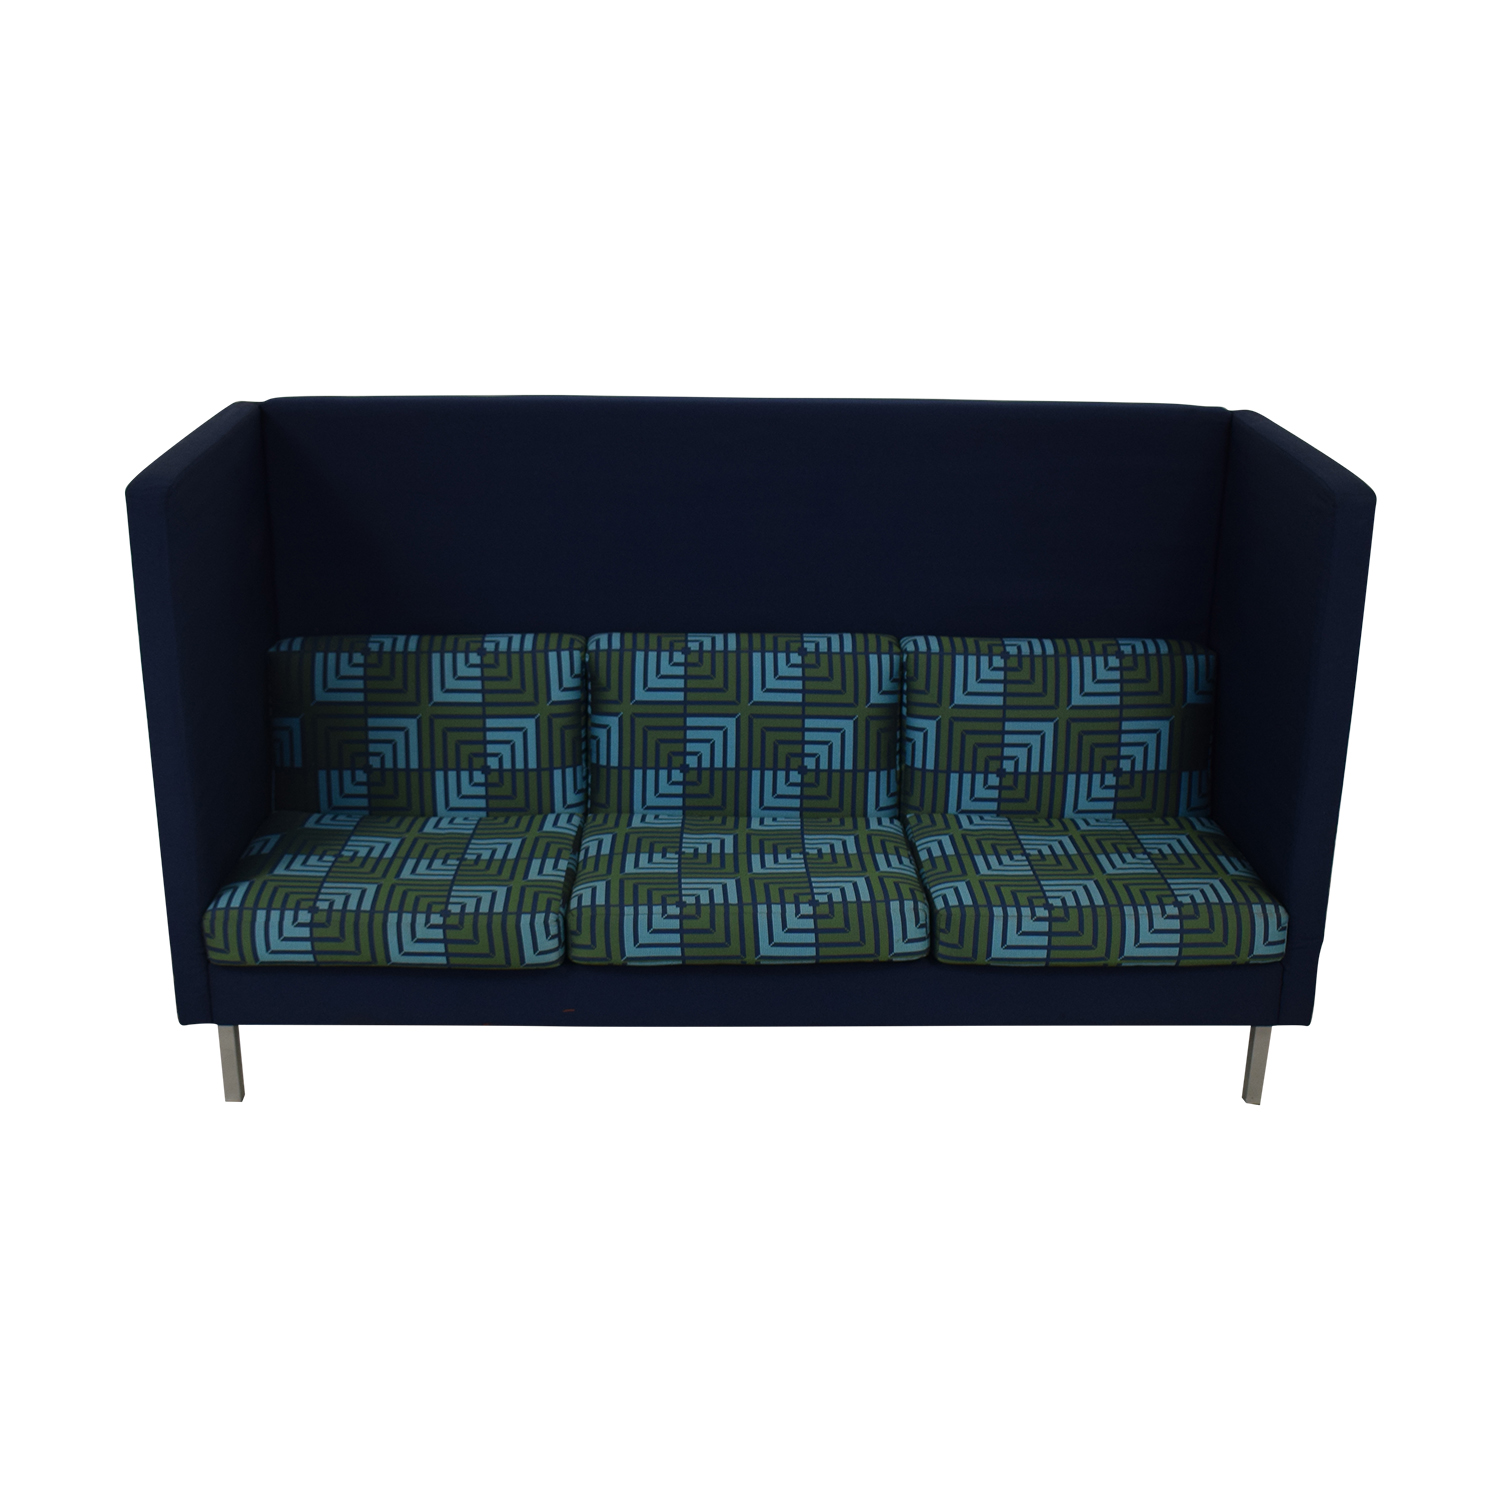 Nienkamper Nienkamper Tuxedo High-Back Sofa nj